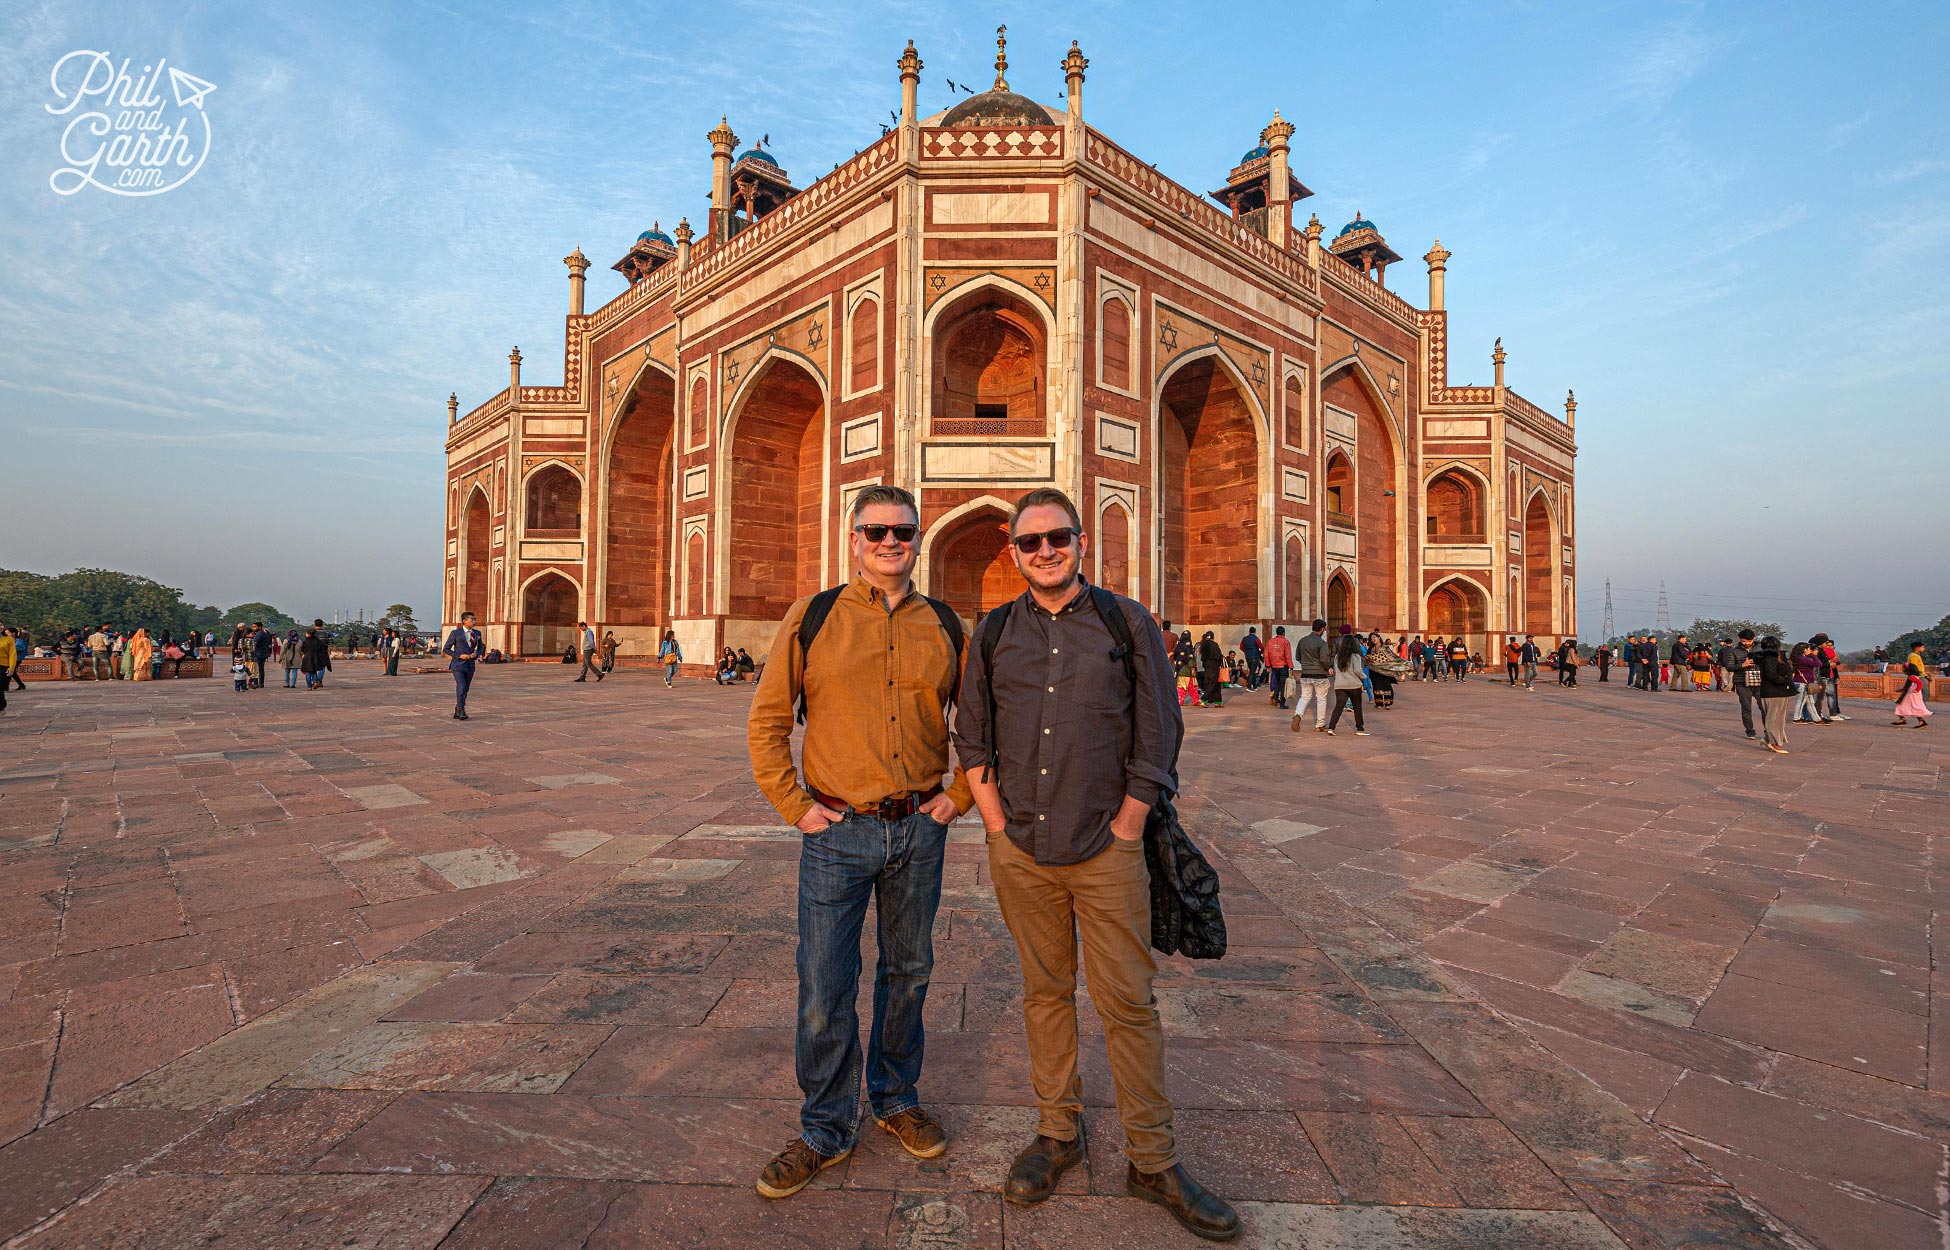 Phil and Garth's Top 5 Delhi Tips